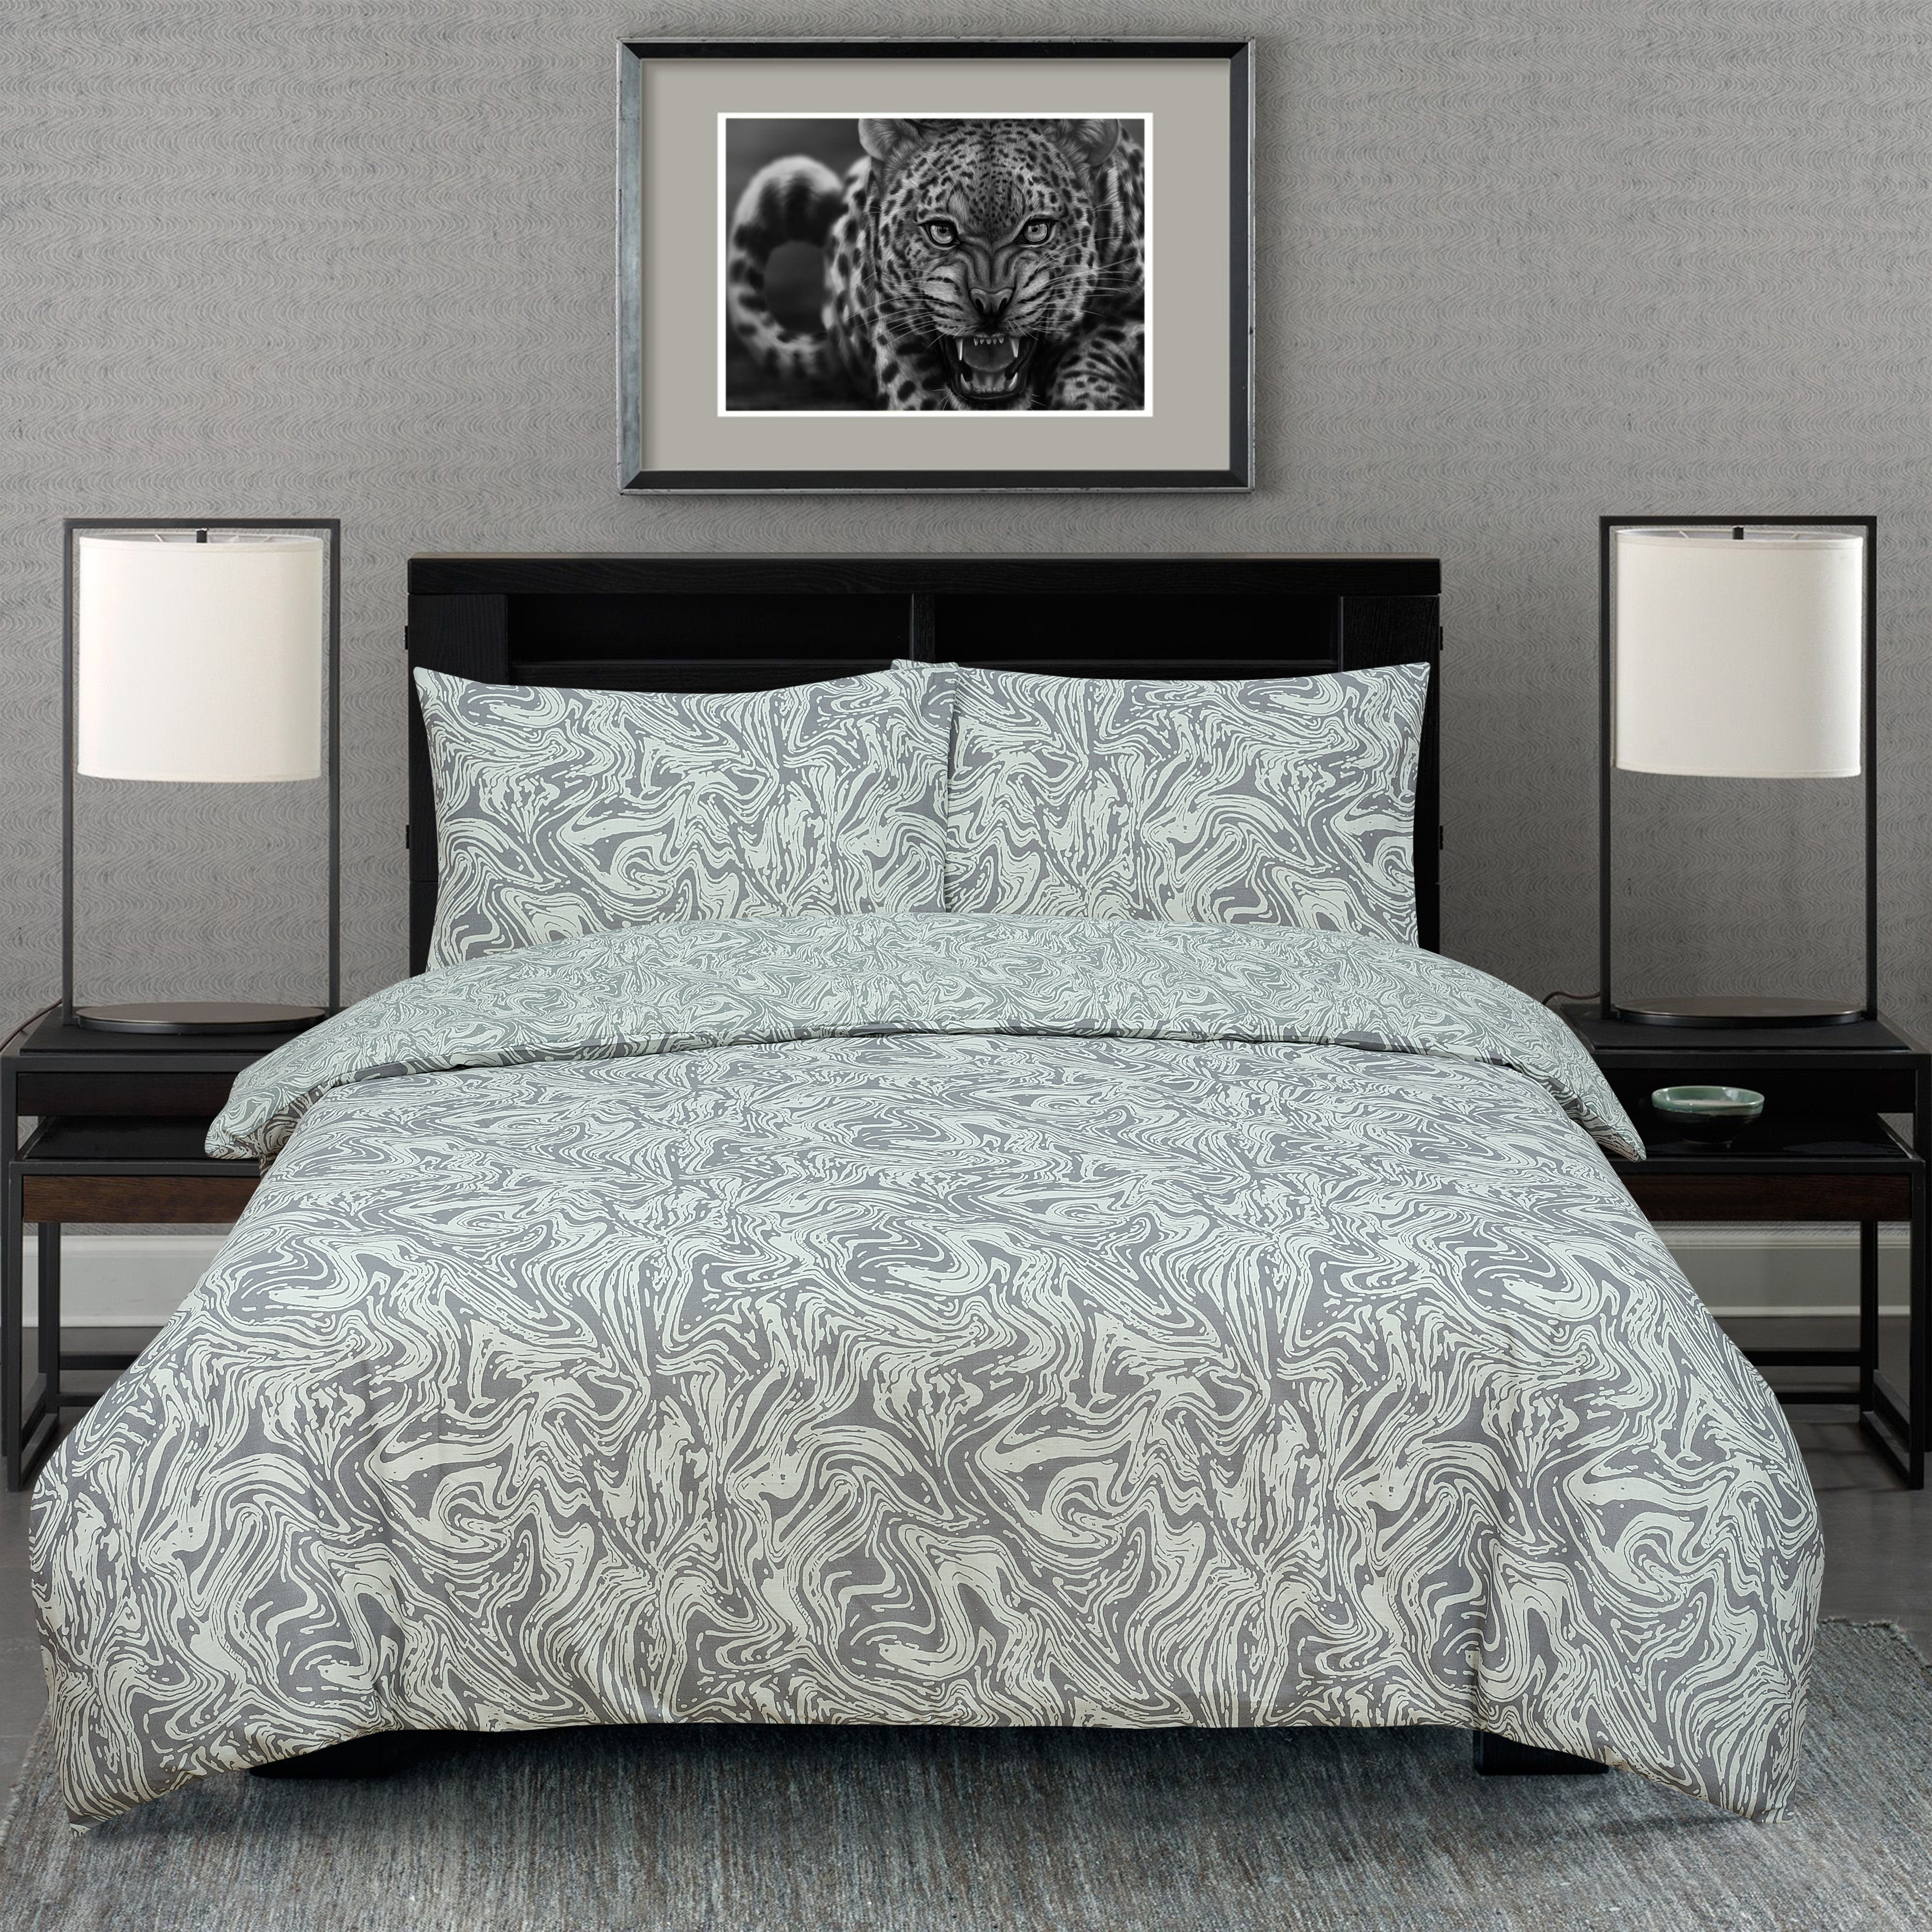 Marble Silver Reversible Rotary Single Bed Duvet Quilt Cover Set